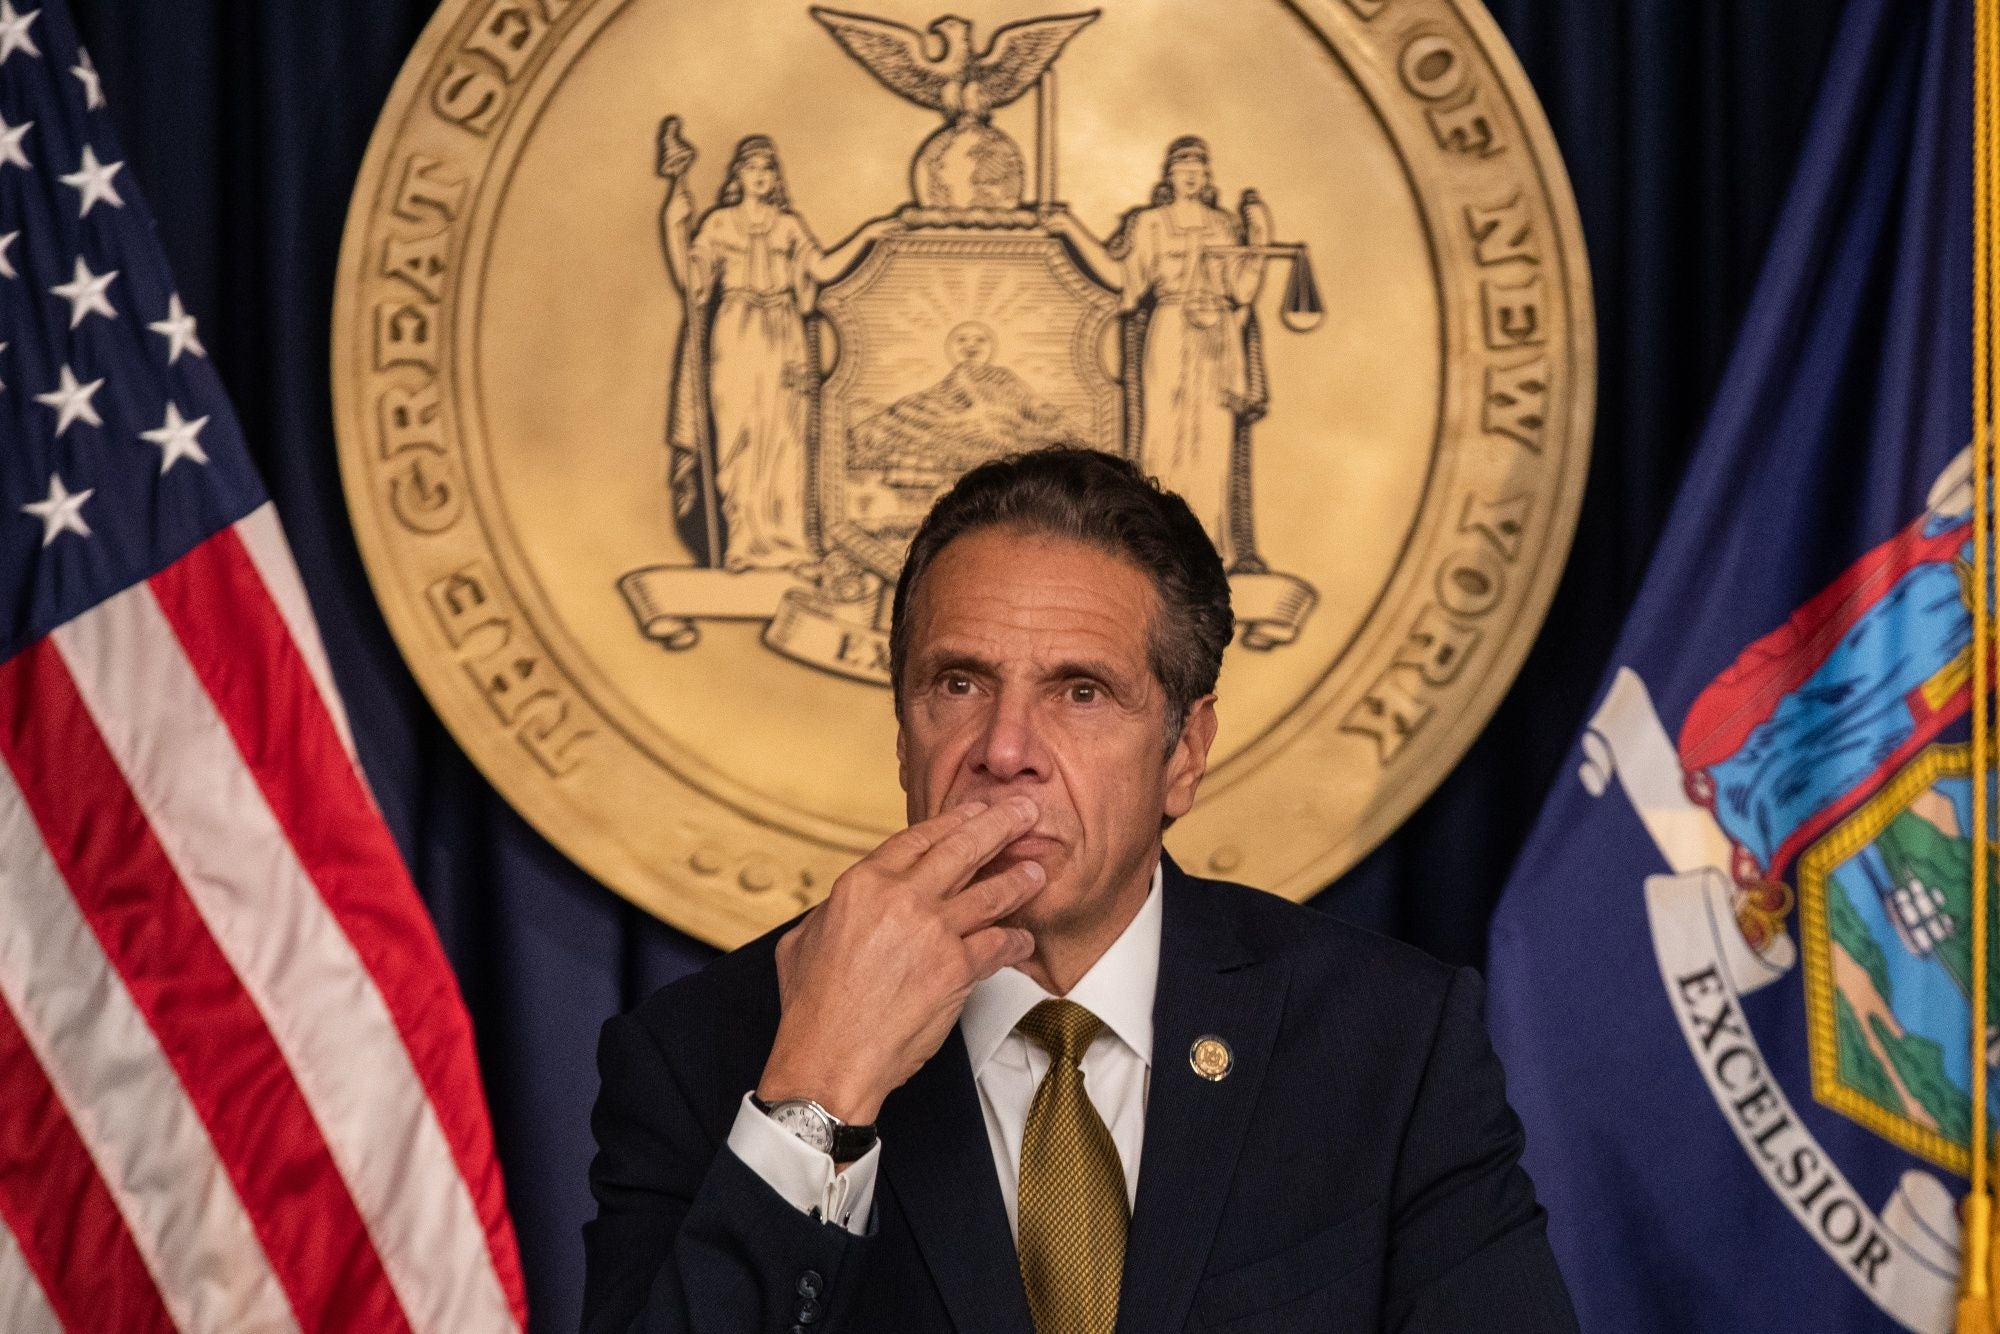 Andrew Cuomo, governor of New York.